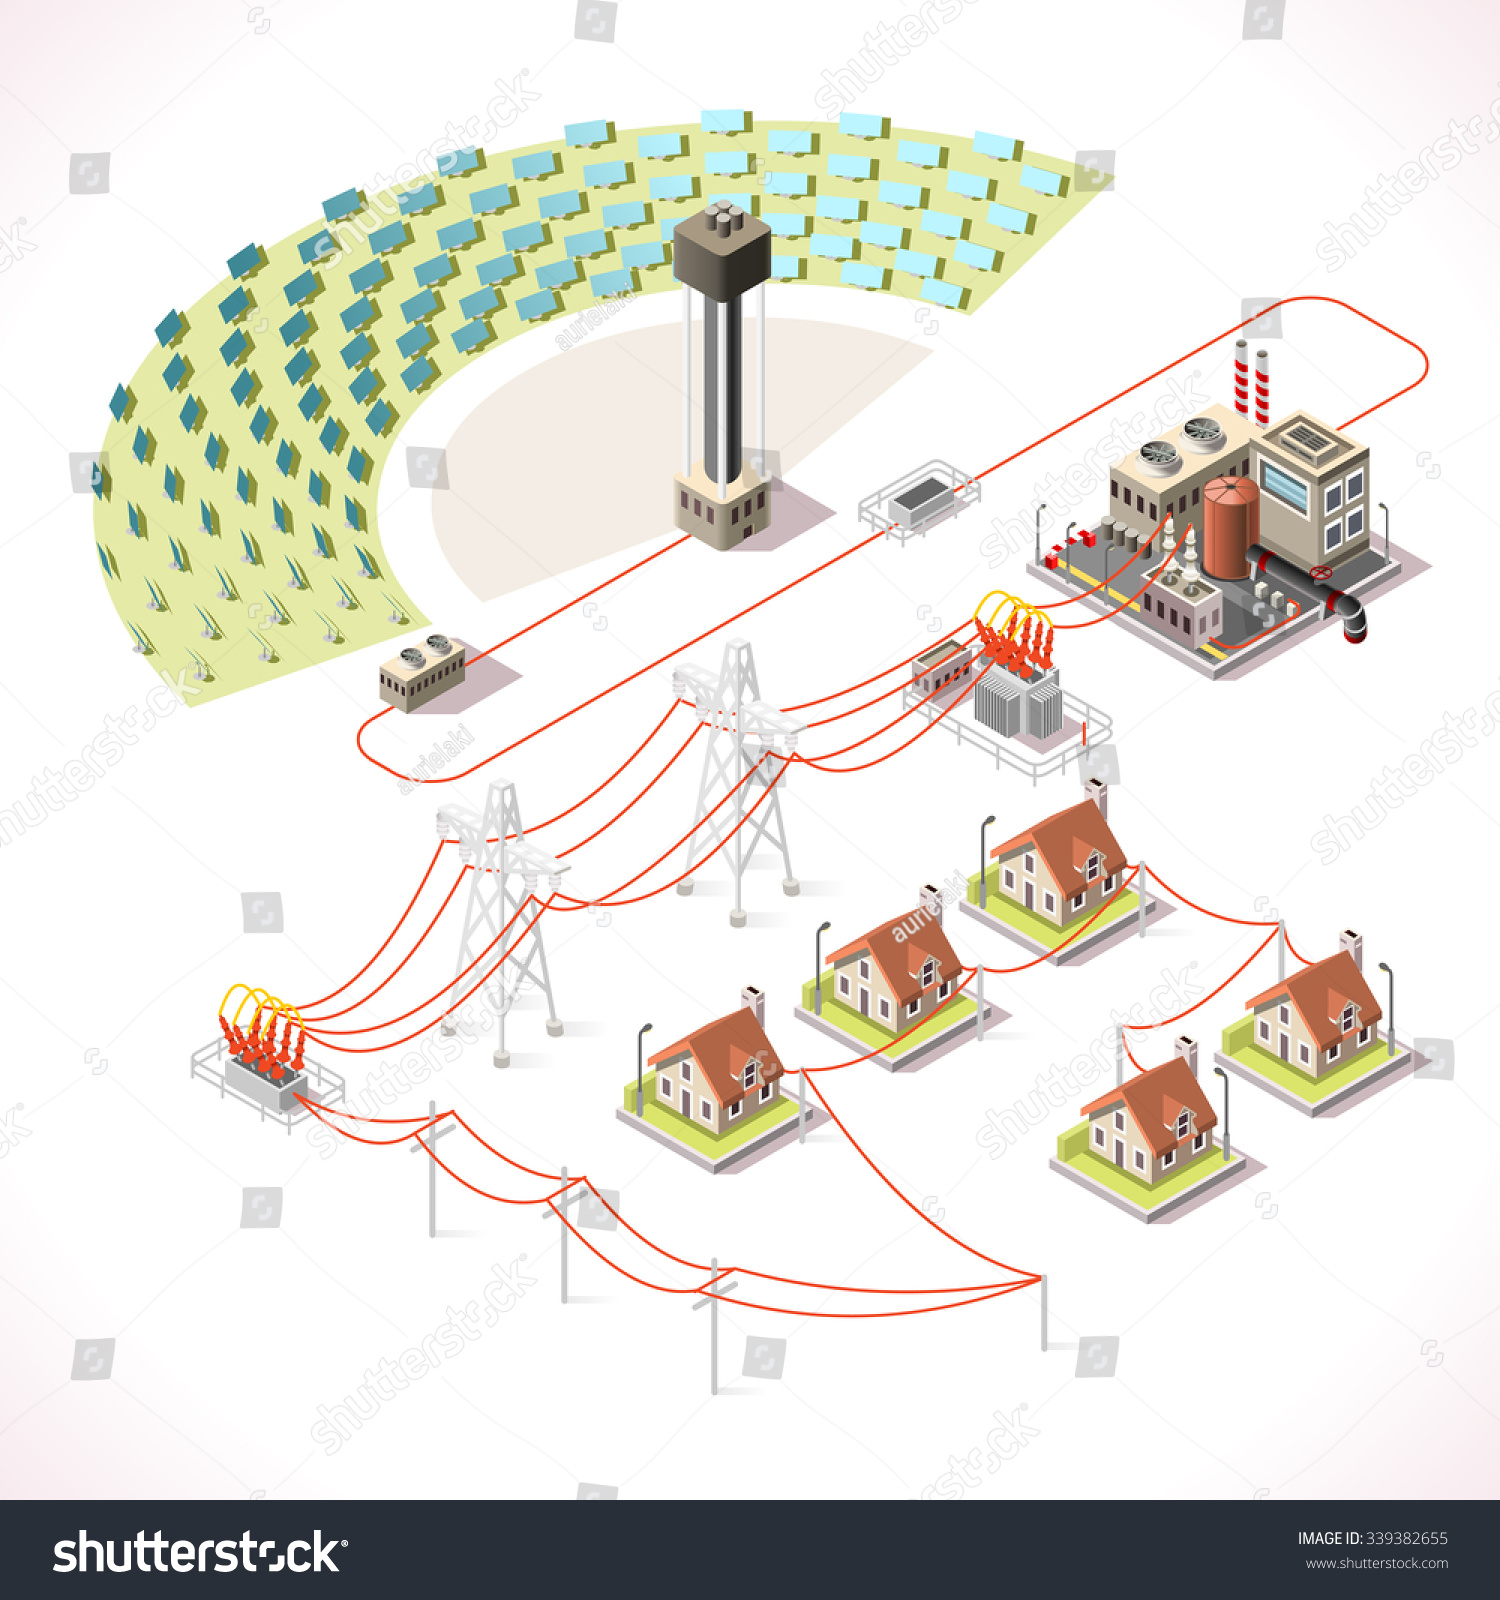 hight resolution of concentrating solar power system factory csp plant farm electric station infographic electricity grid supply chain